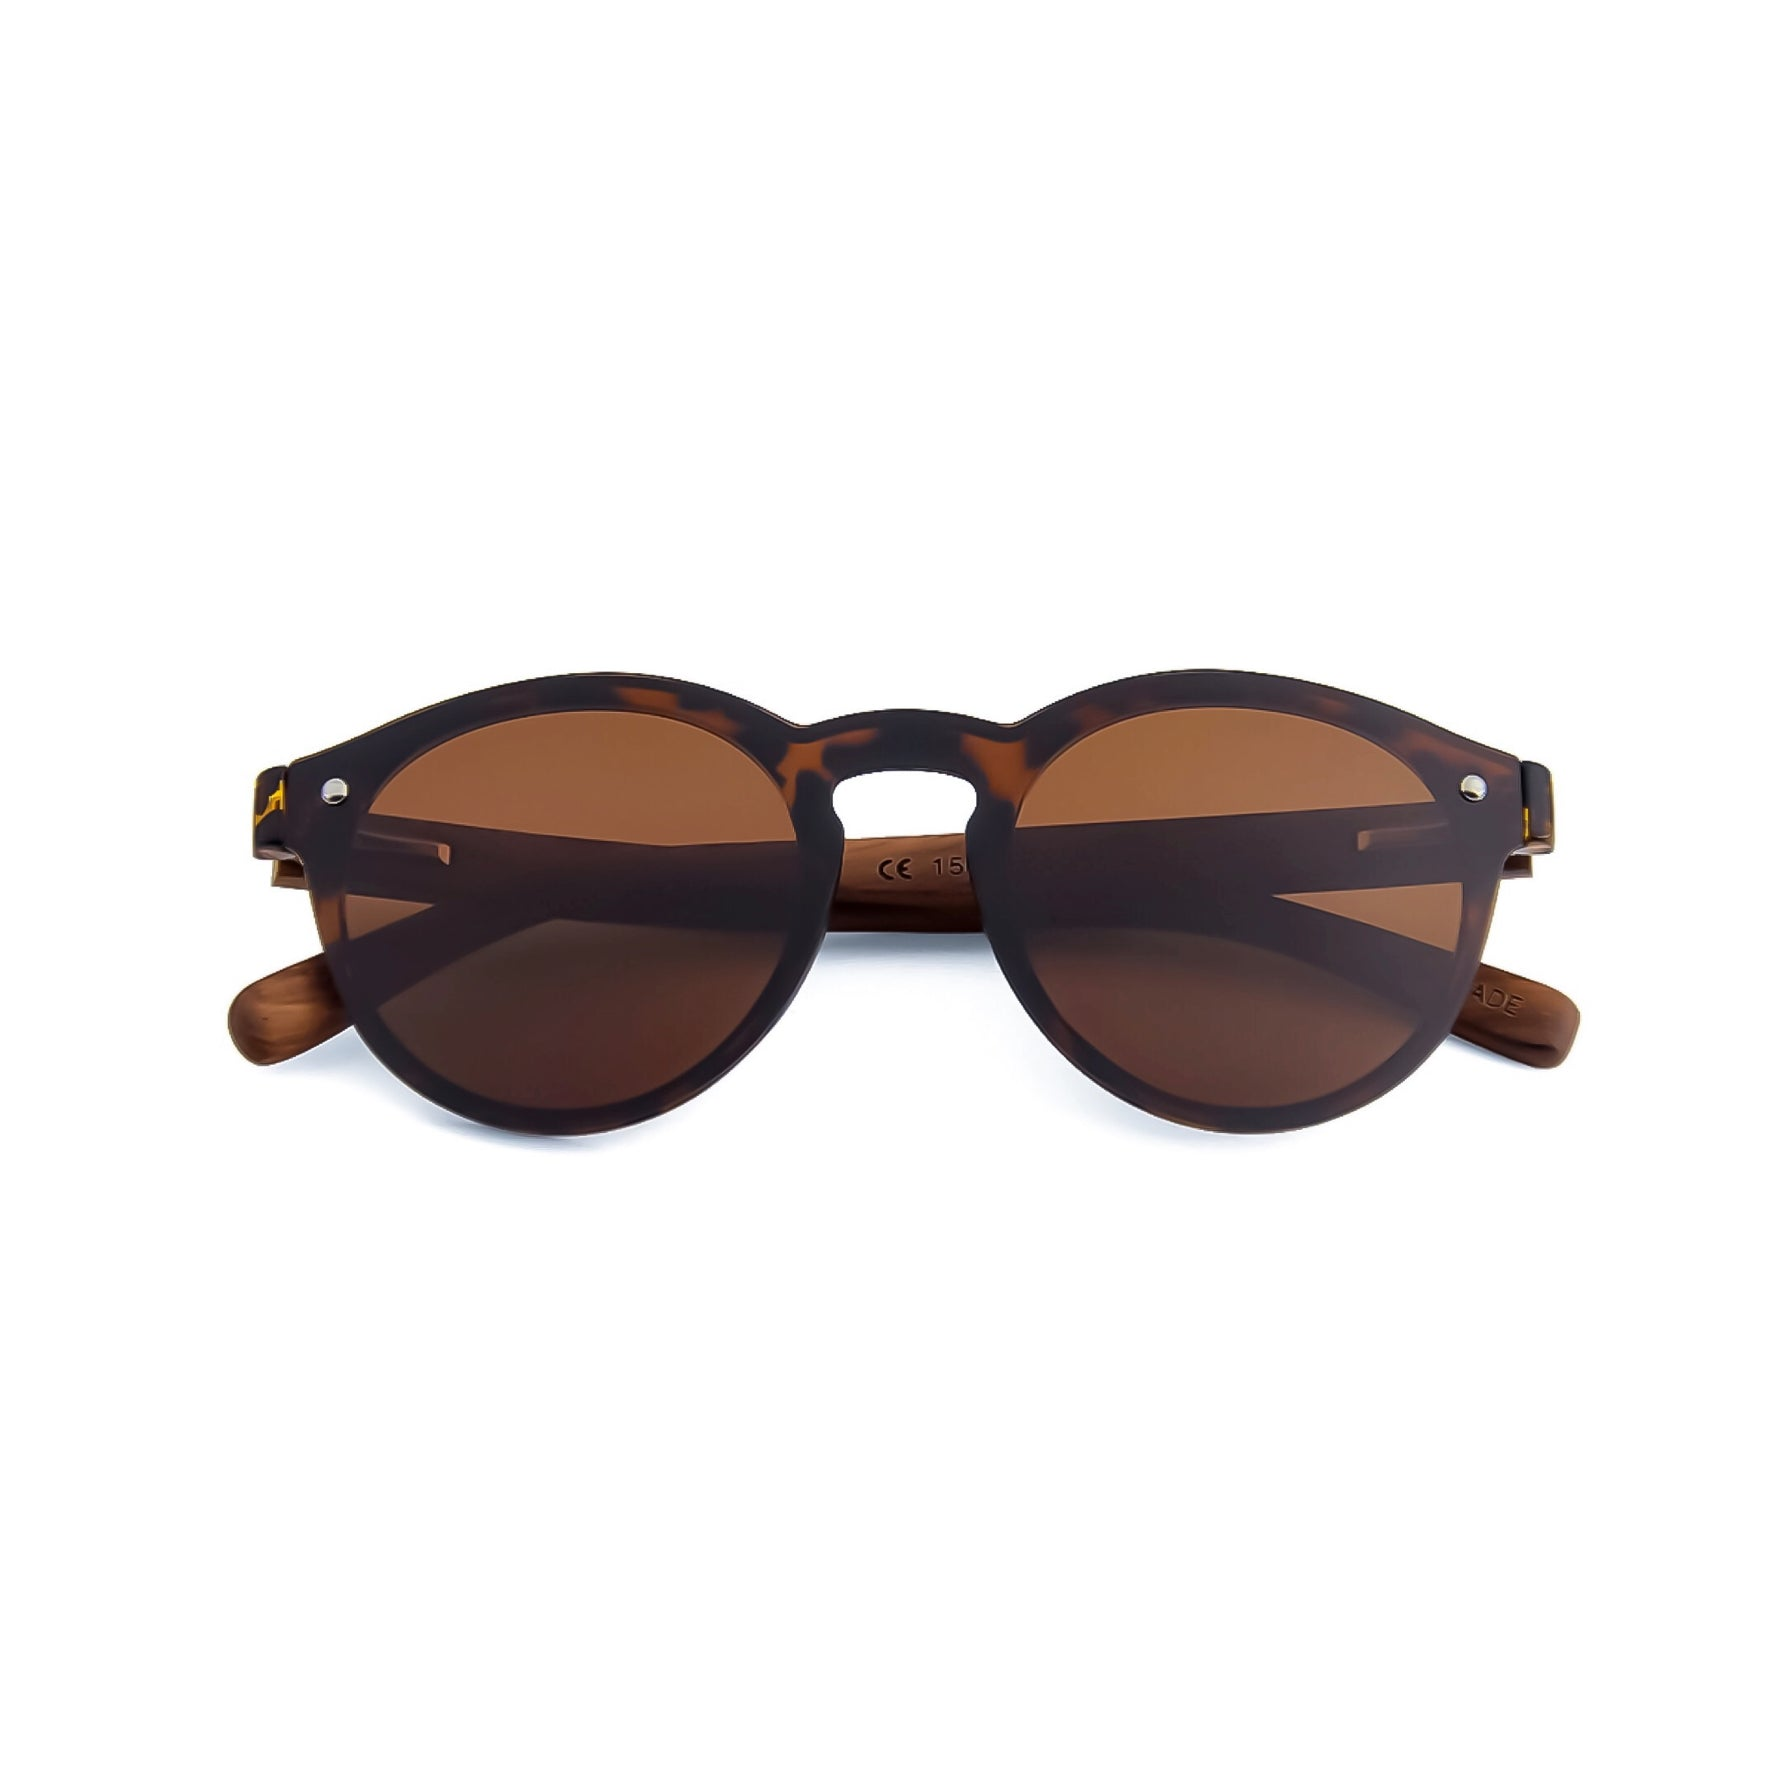 Round Tortoise Shell Beatnick Polarized Bamboo Wooden Sunglasses by Derivative